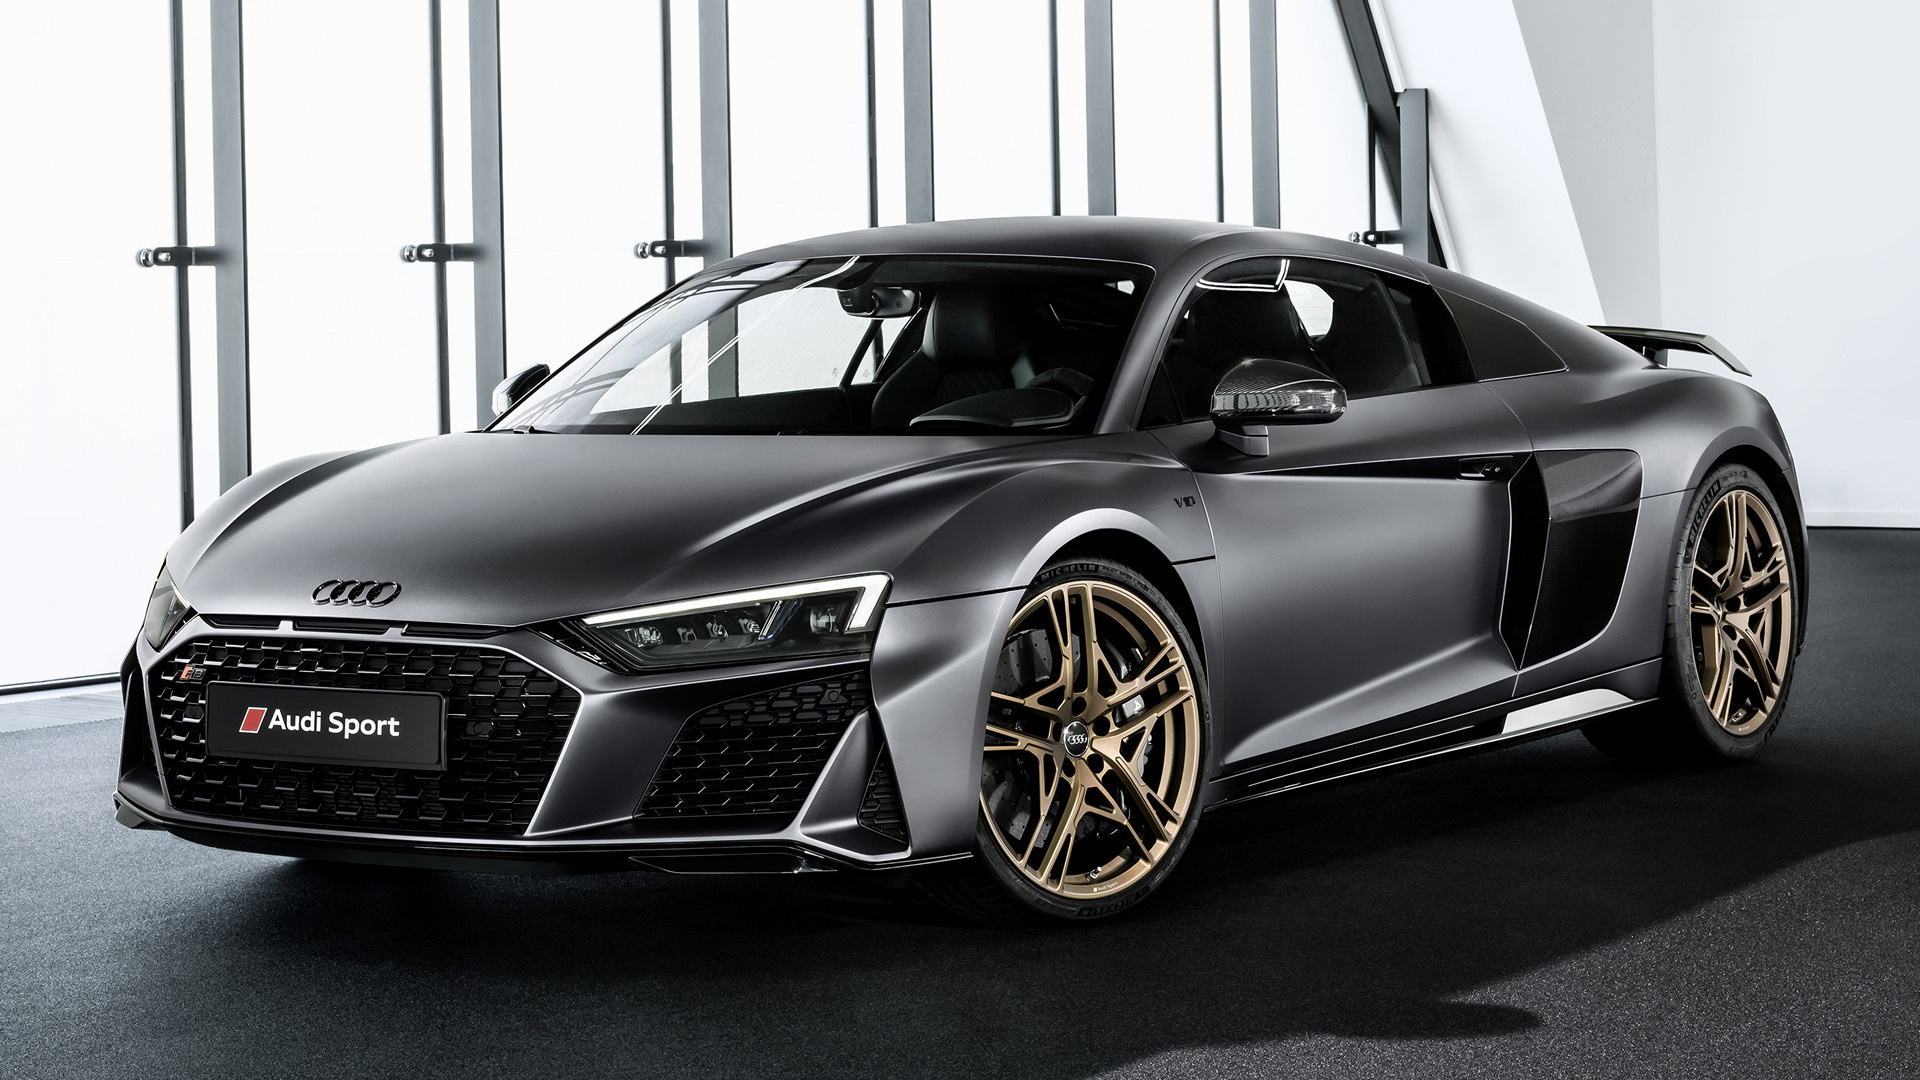 2019 audi r8 coupe decennium wallpapers and hd images. Black Bedroom Furniture Sets. Home Design Ideas